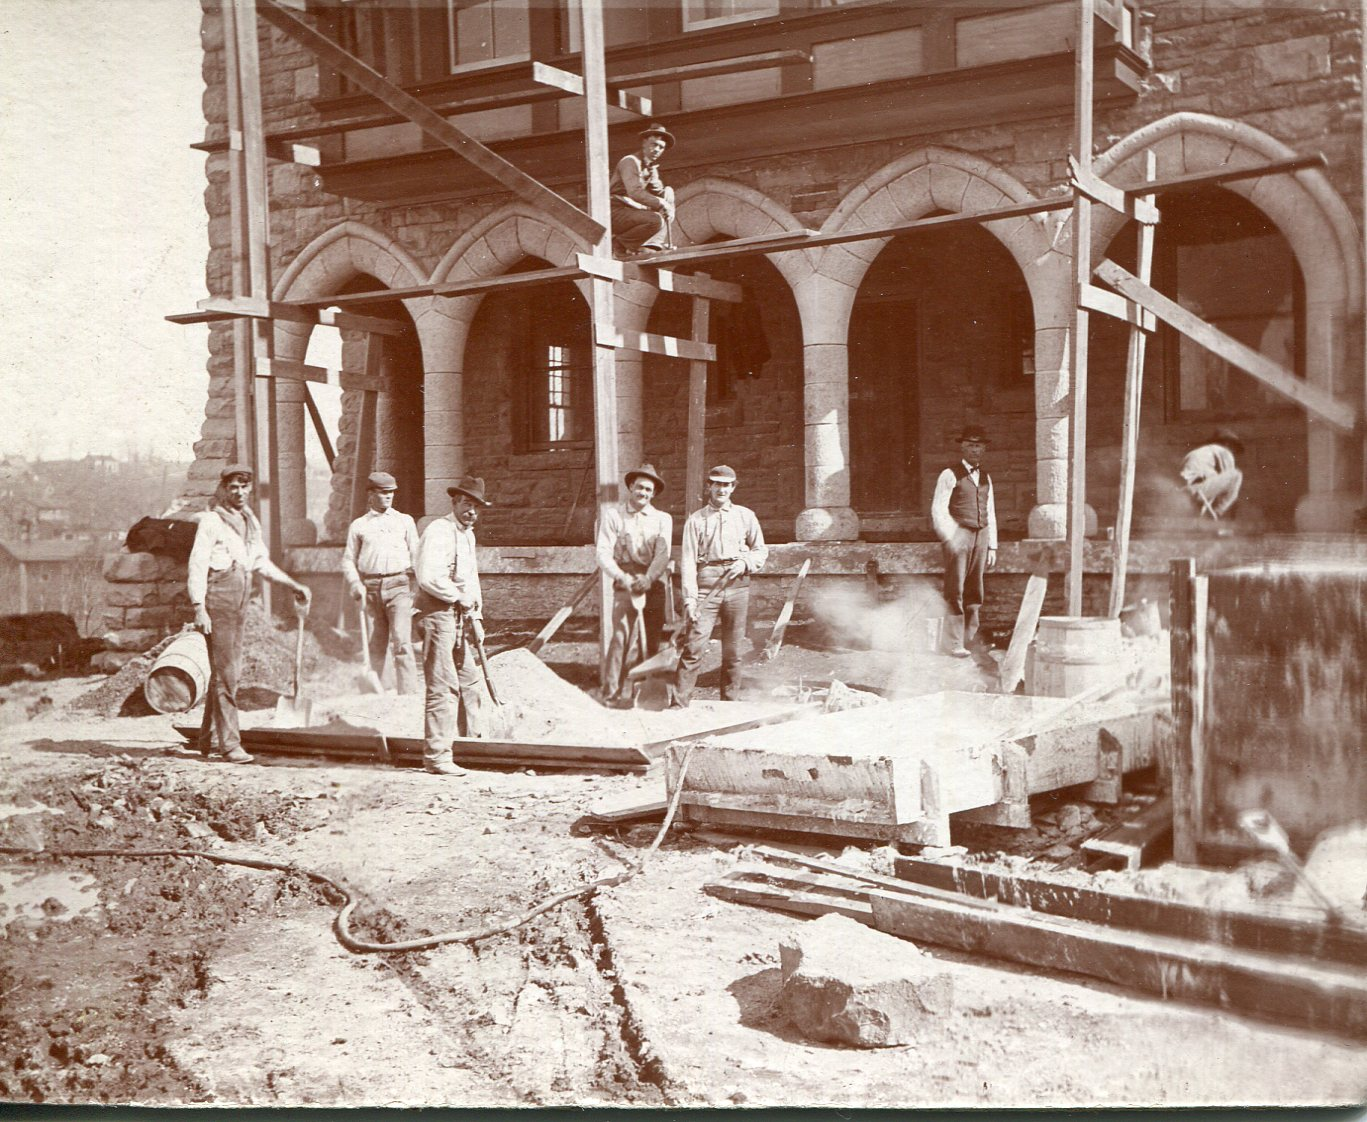 The original Alumni Hall under construction